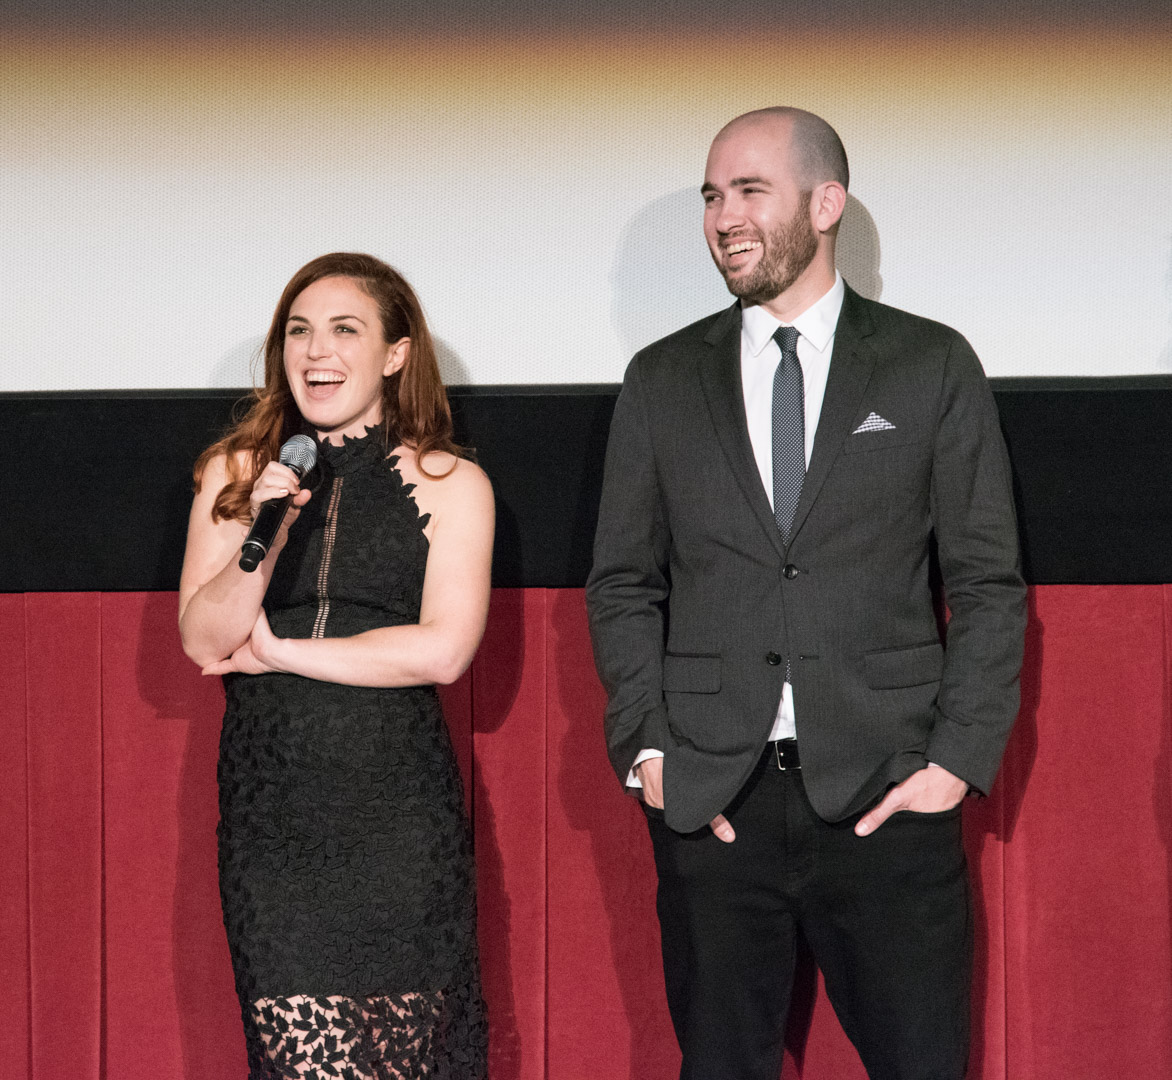 Stacey Maltin and Dani Tenenbaum at a Q&A at Dances With Films.jpg